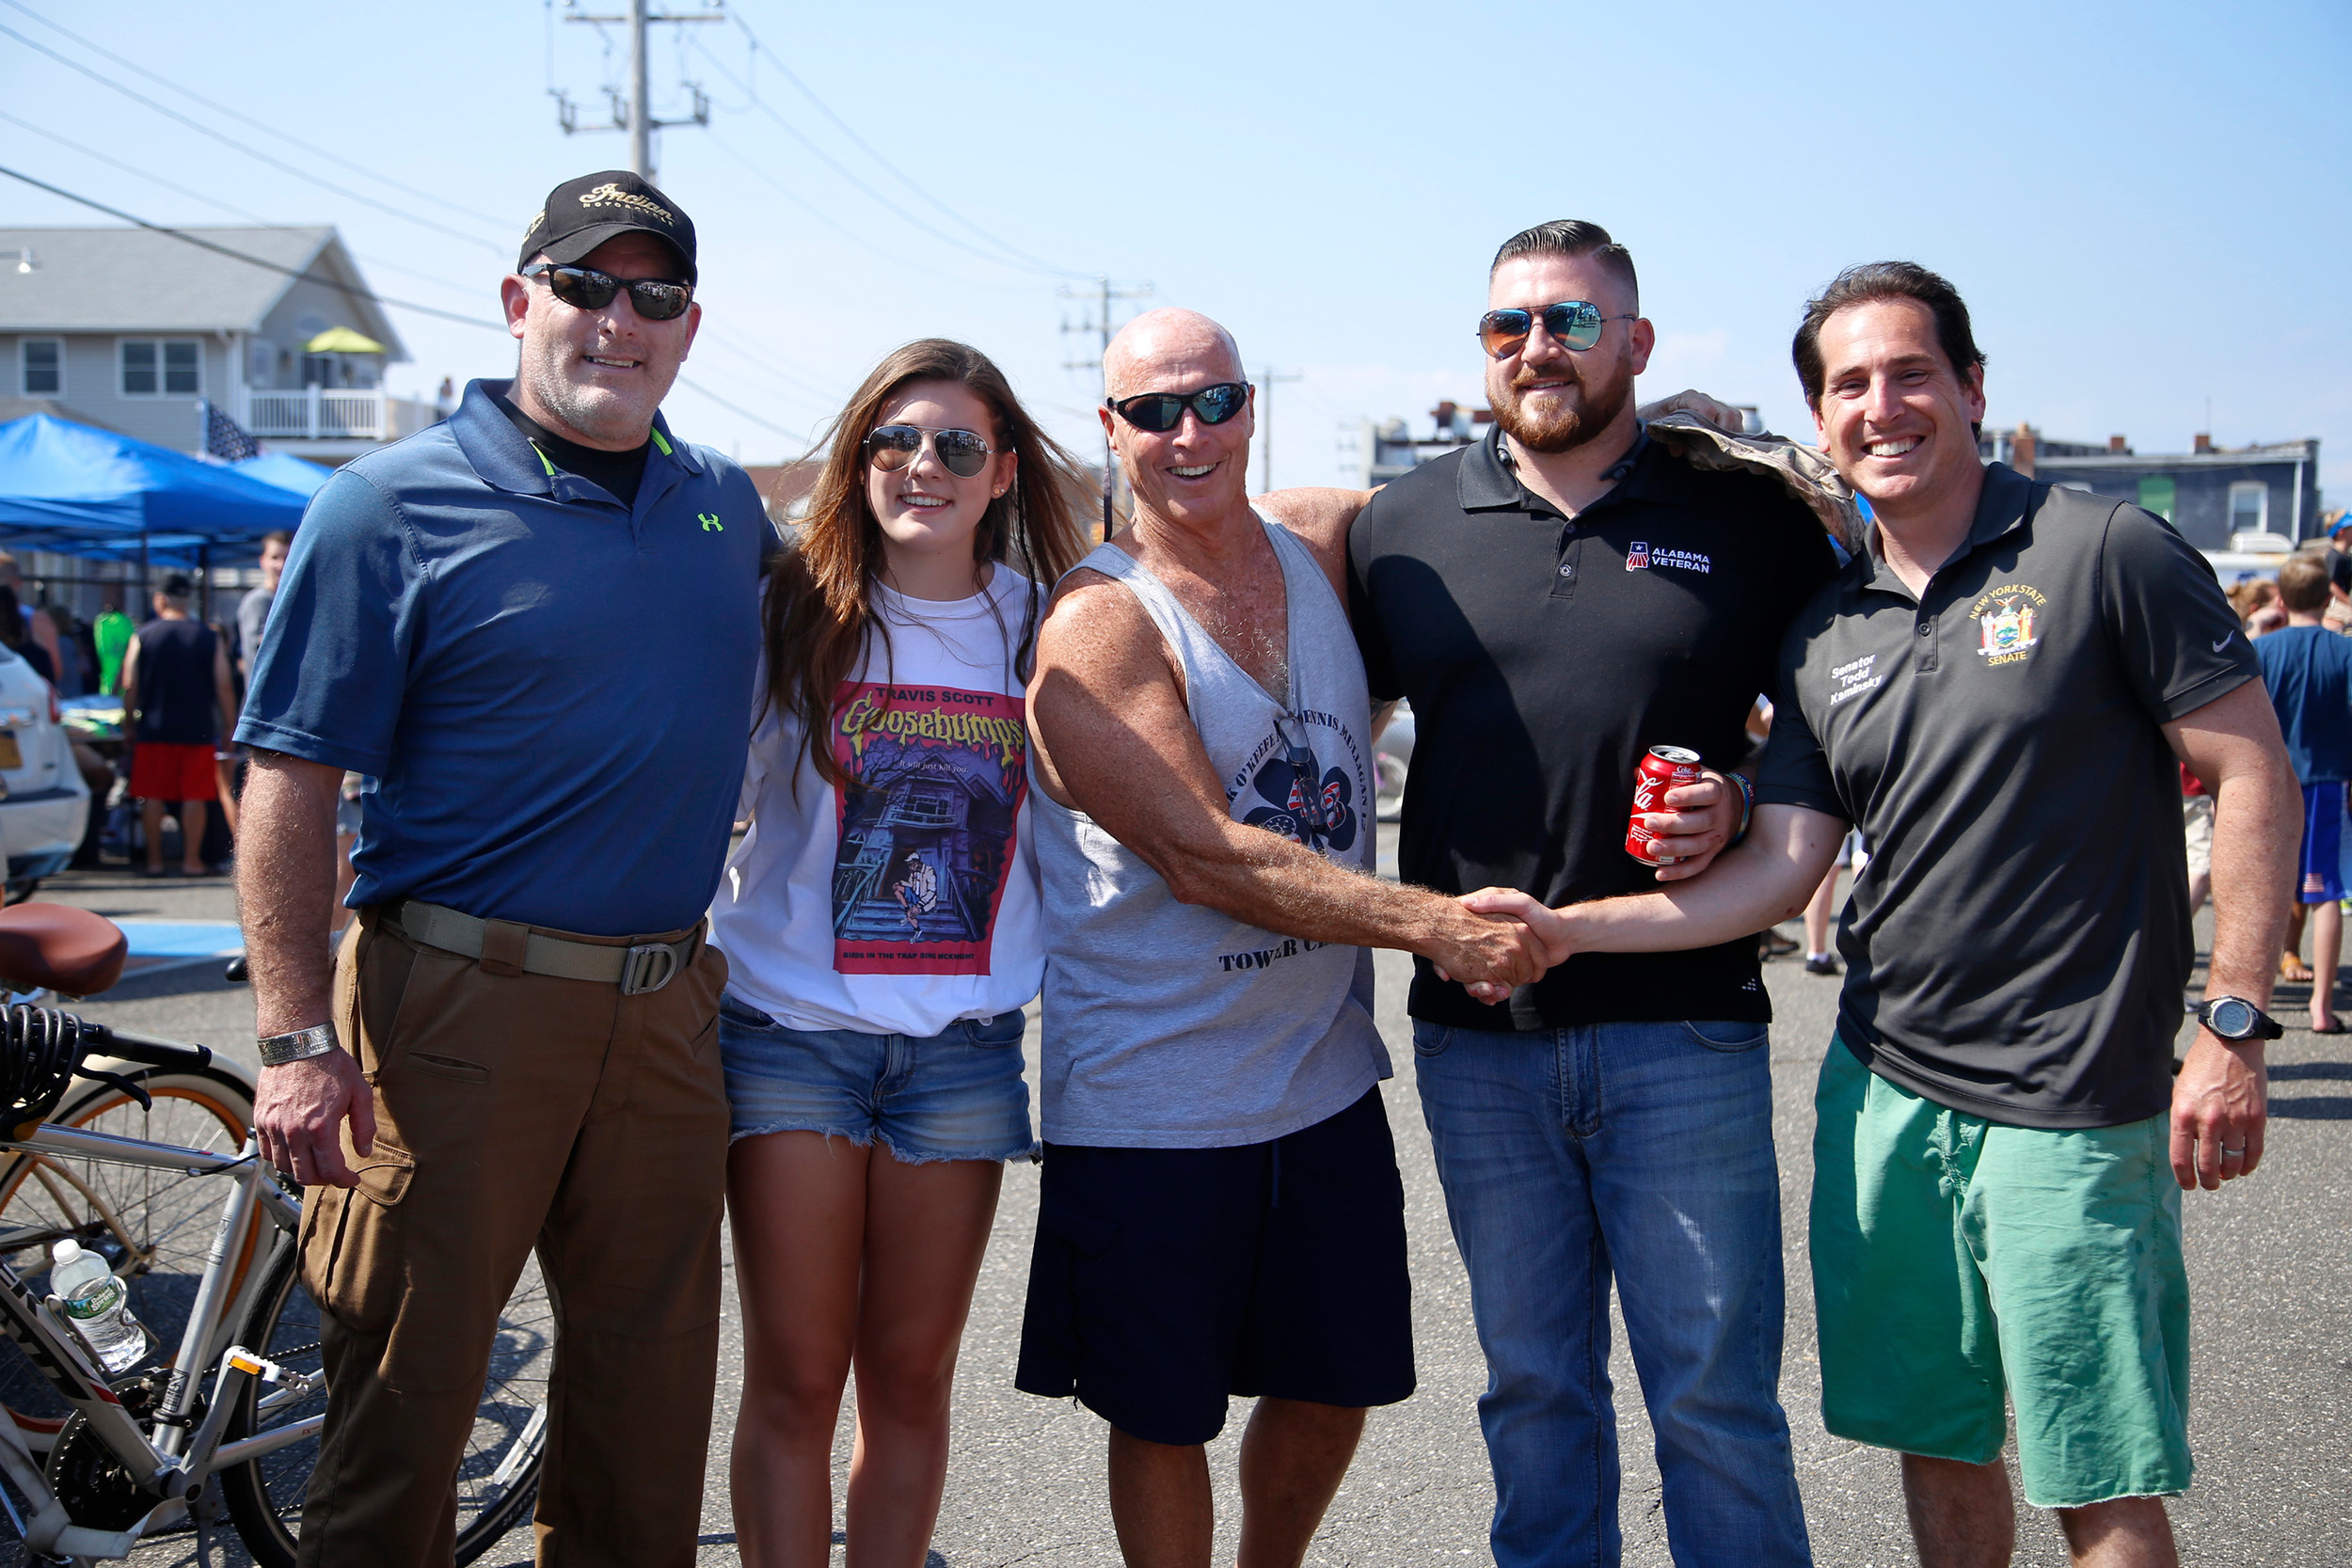 U.S. Marine Corps Gunnery Sgt. Glen Silva, Elizabeth Silva, Long Beach Waterfront Warriors co-founder Jerry Snell, Pat Johnson, of the Homeless Veterans' Initiative USA, and State Sen. Todd Kaminsky.